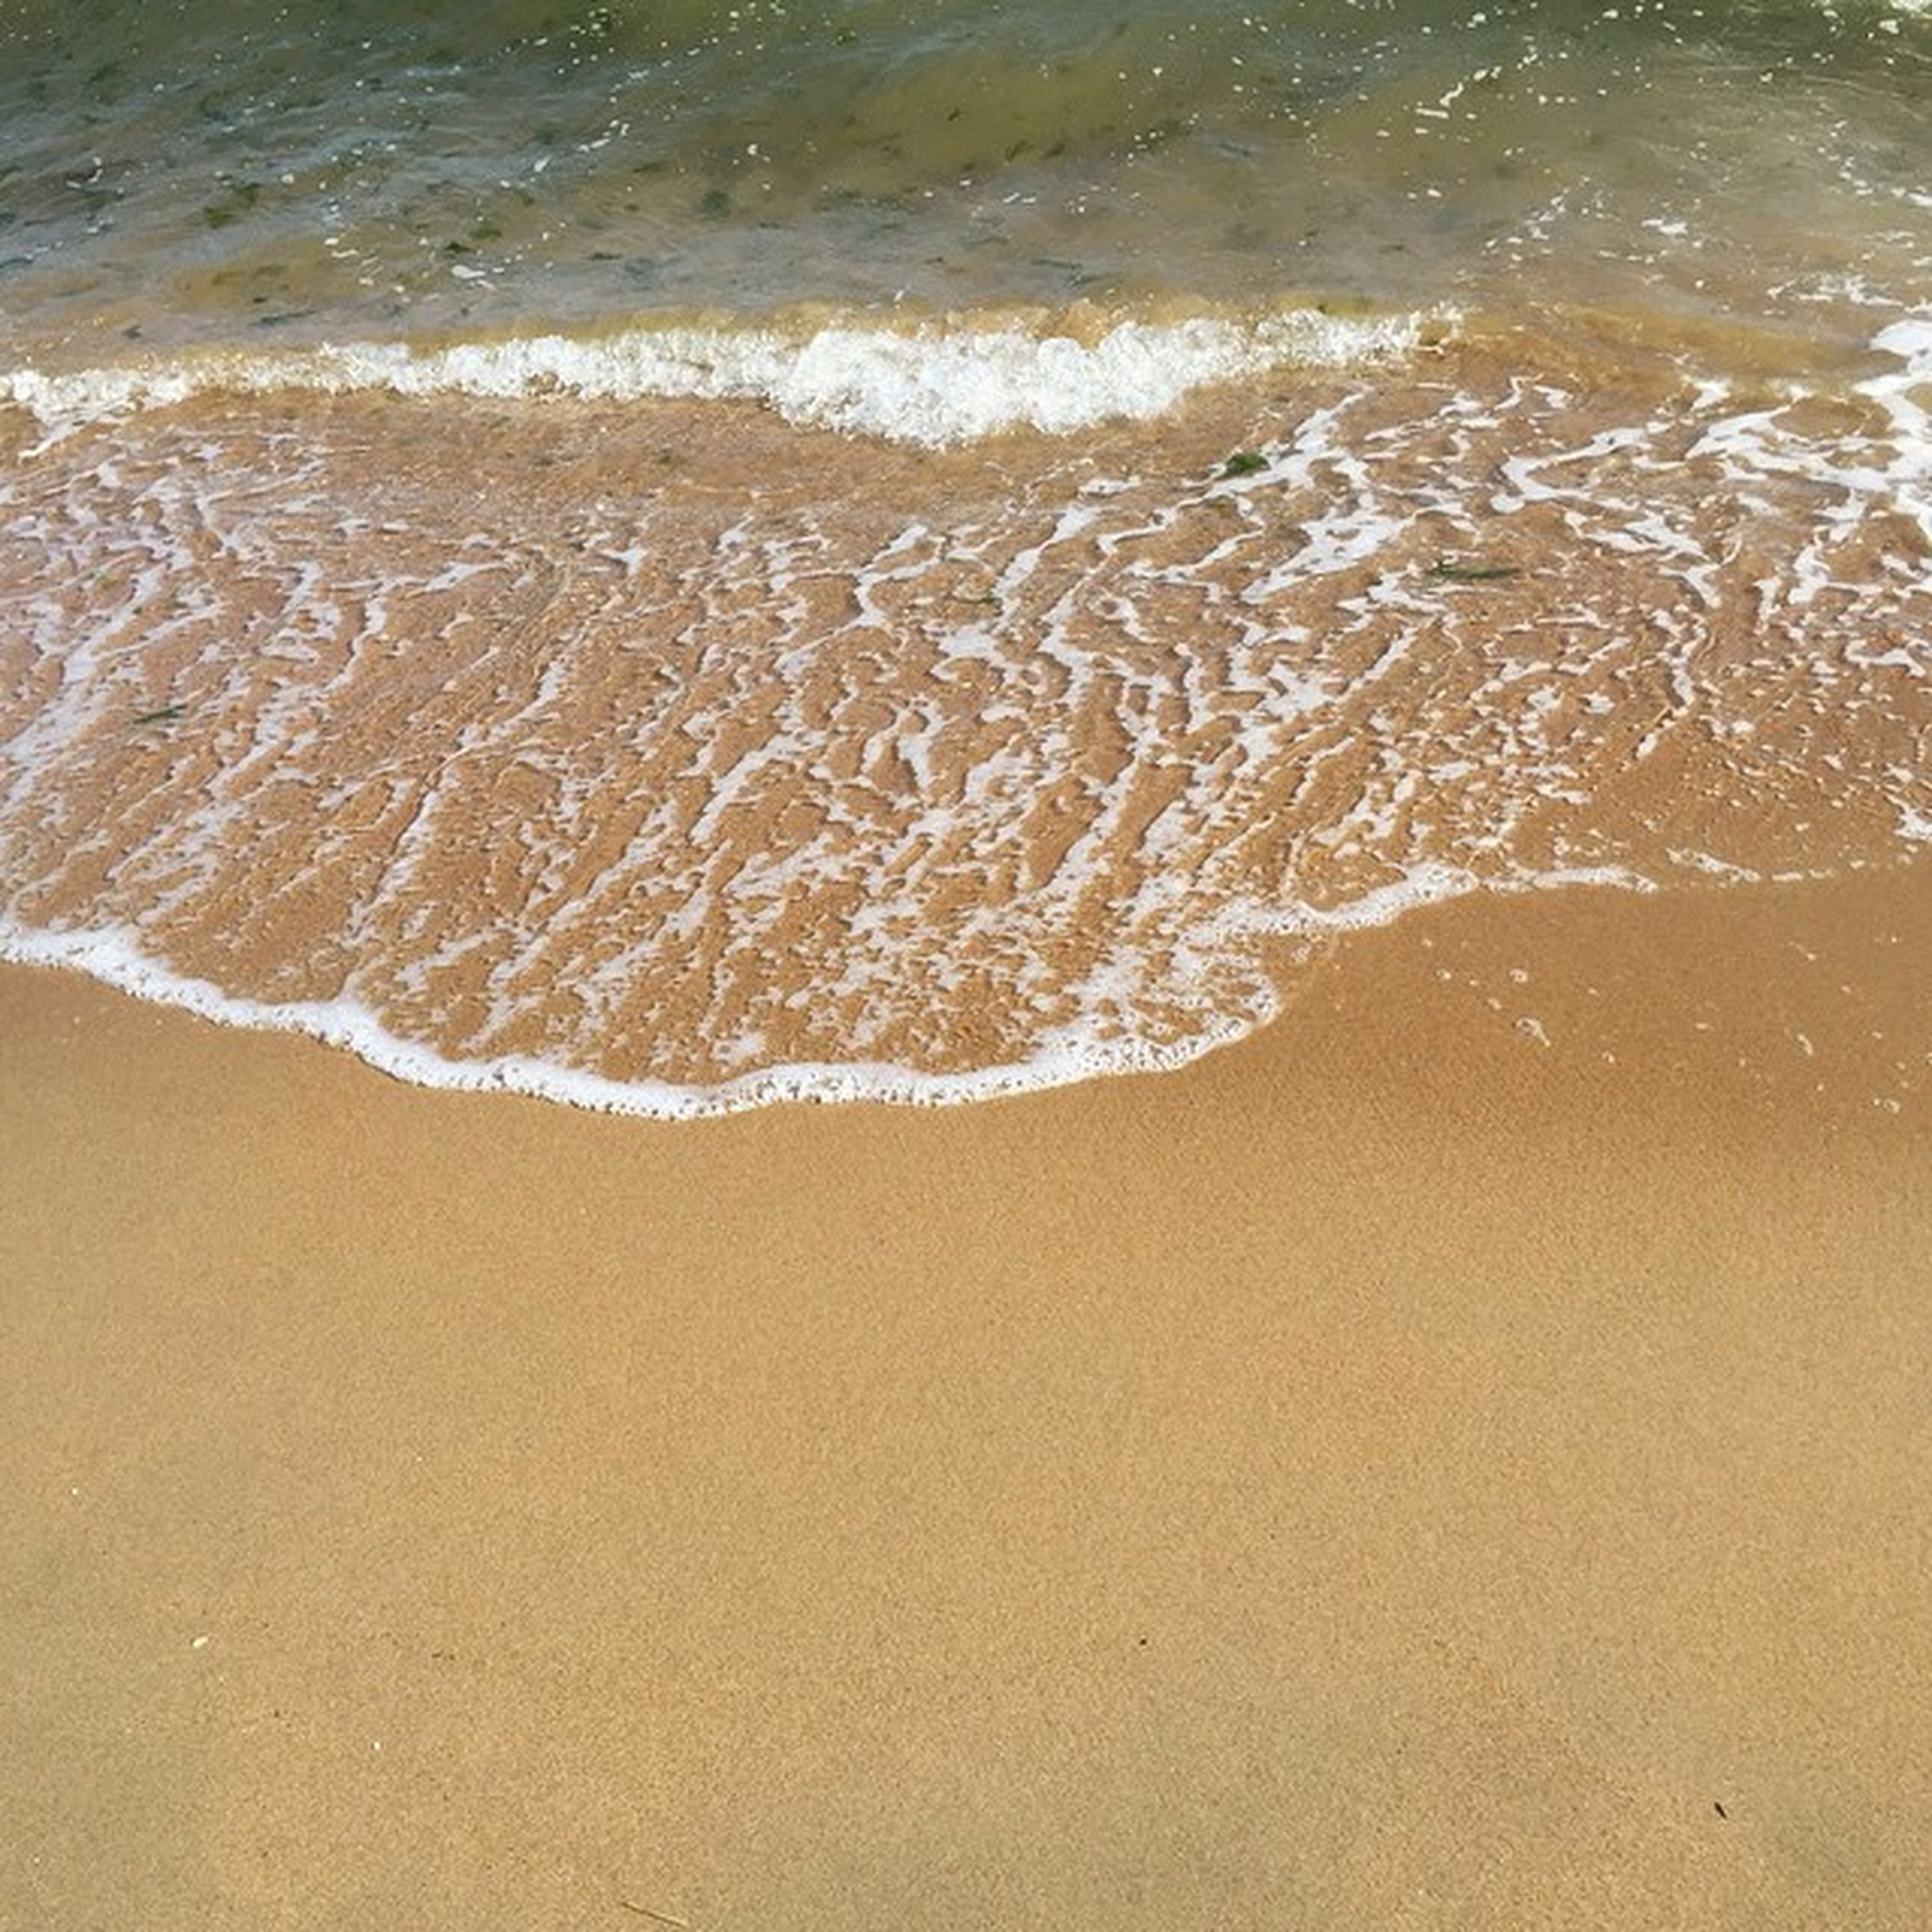 water, beach, sand, sea, shore, wave, surf, nature, tranquility, beauty in nature, wet, rippled, high angle view, sunlight, motion, outdoors, day, scenics, no people, tranquil scene